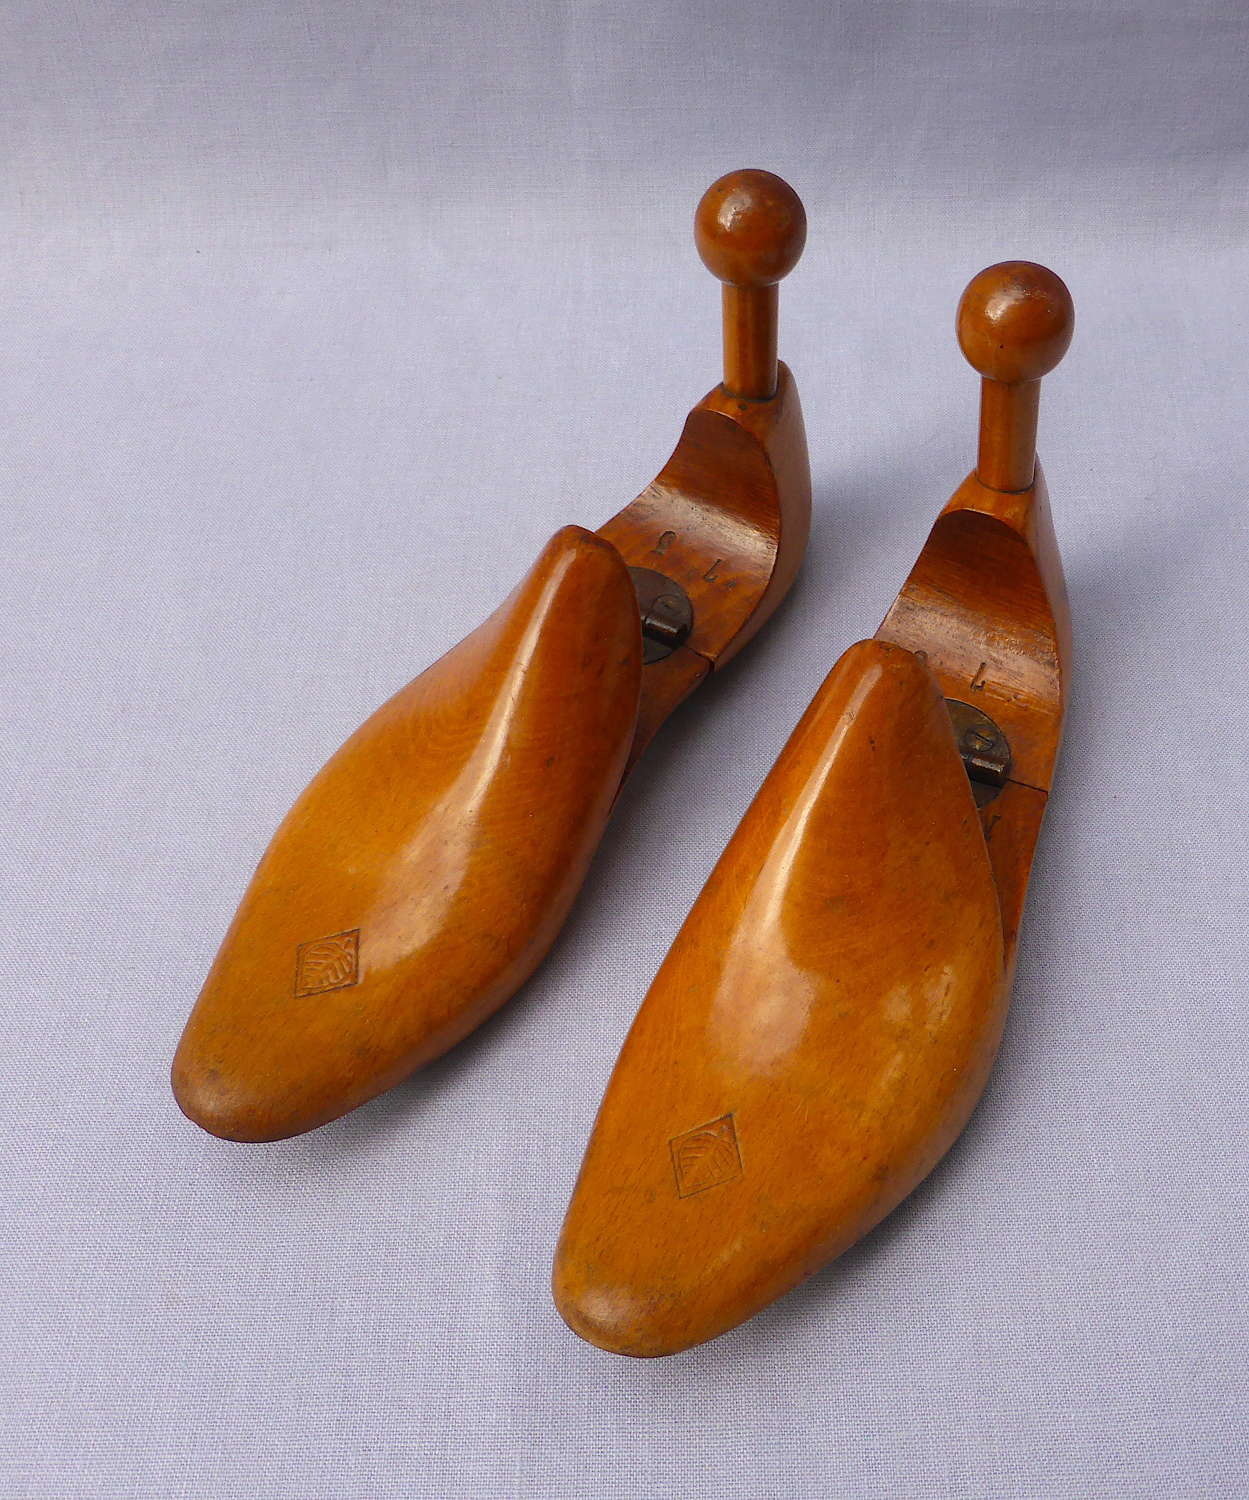 Pair of Early 20th Century Wooden Shoe Lasts